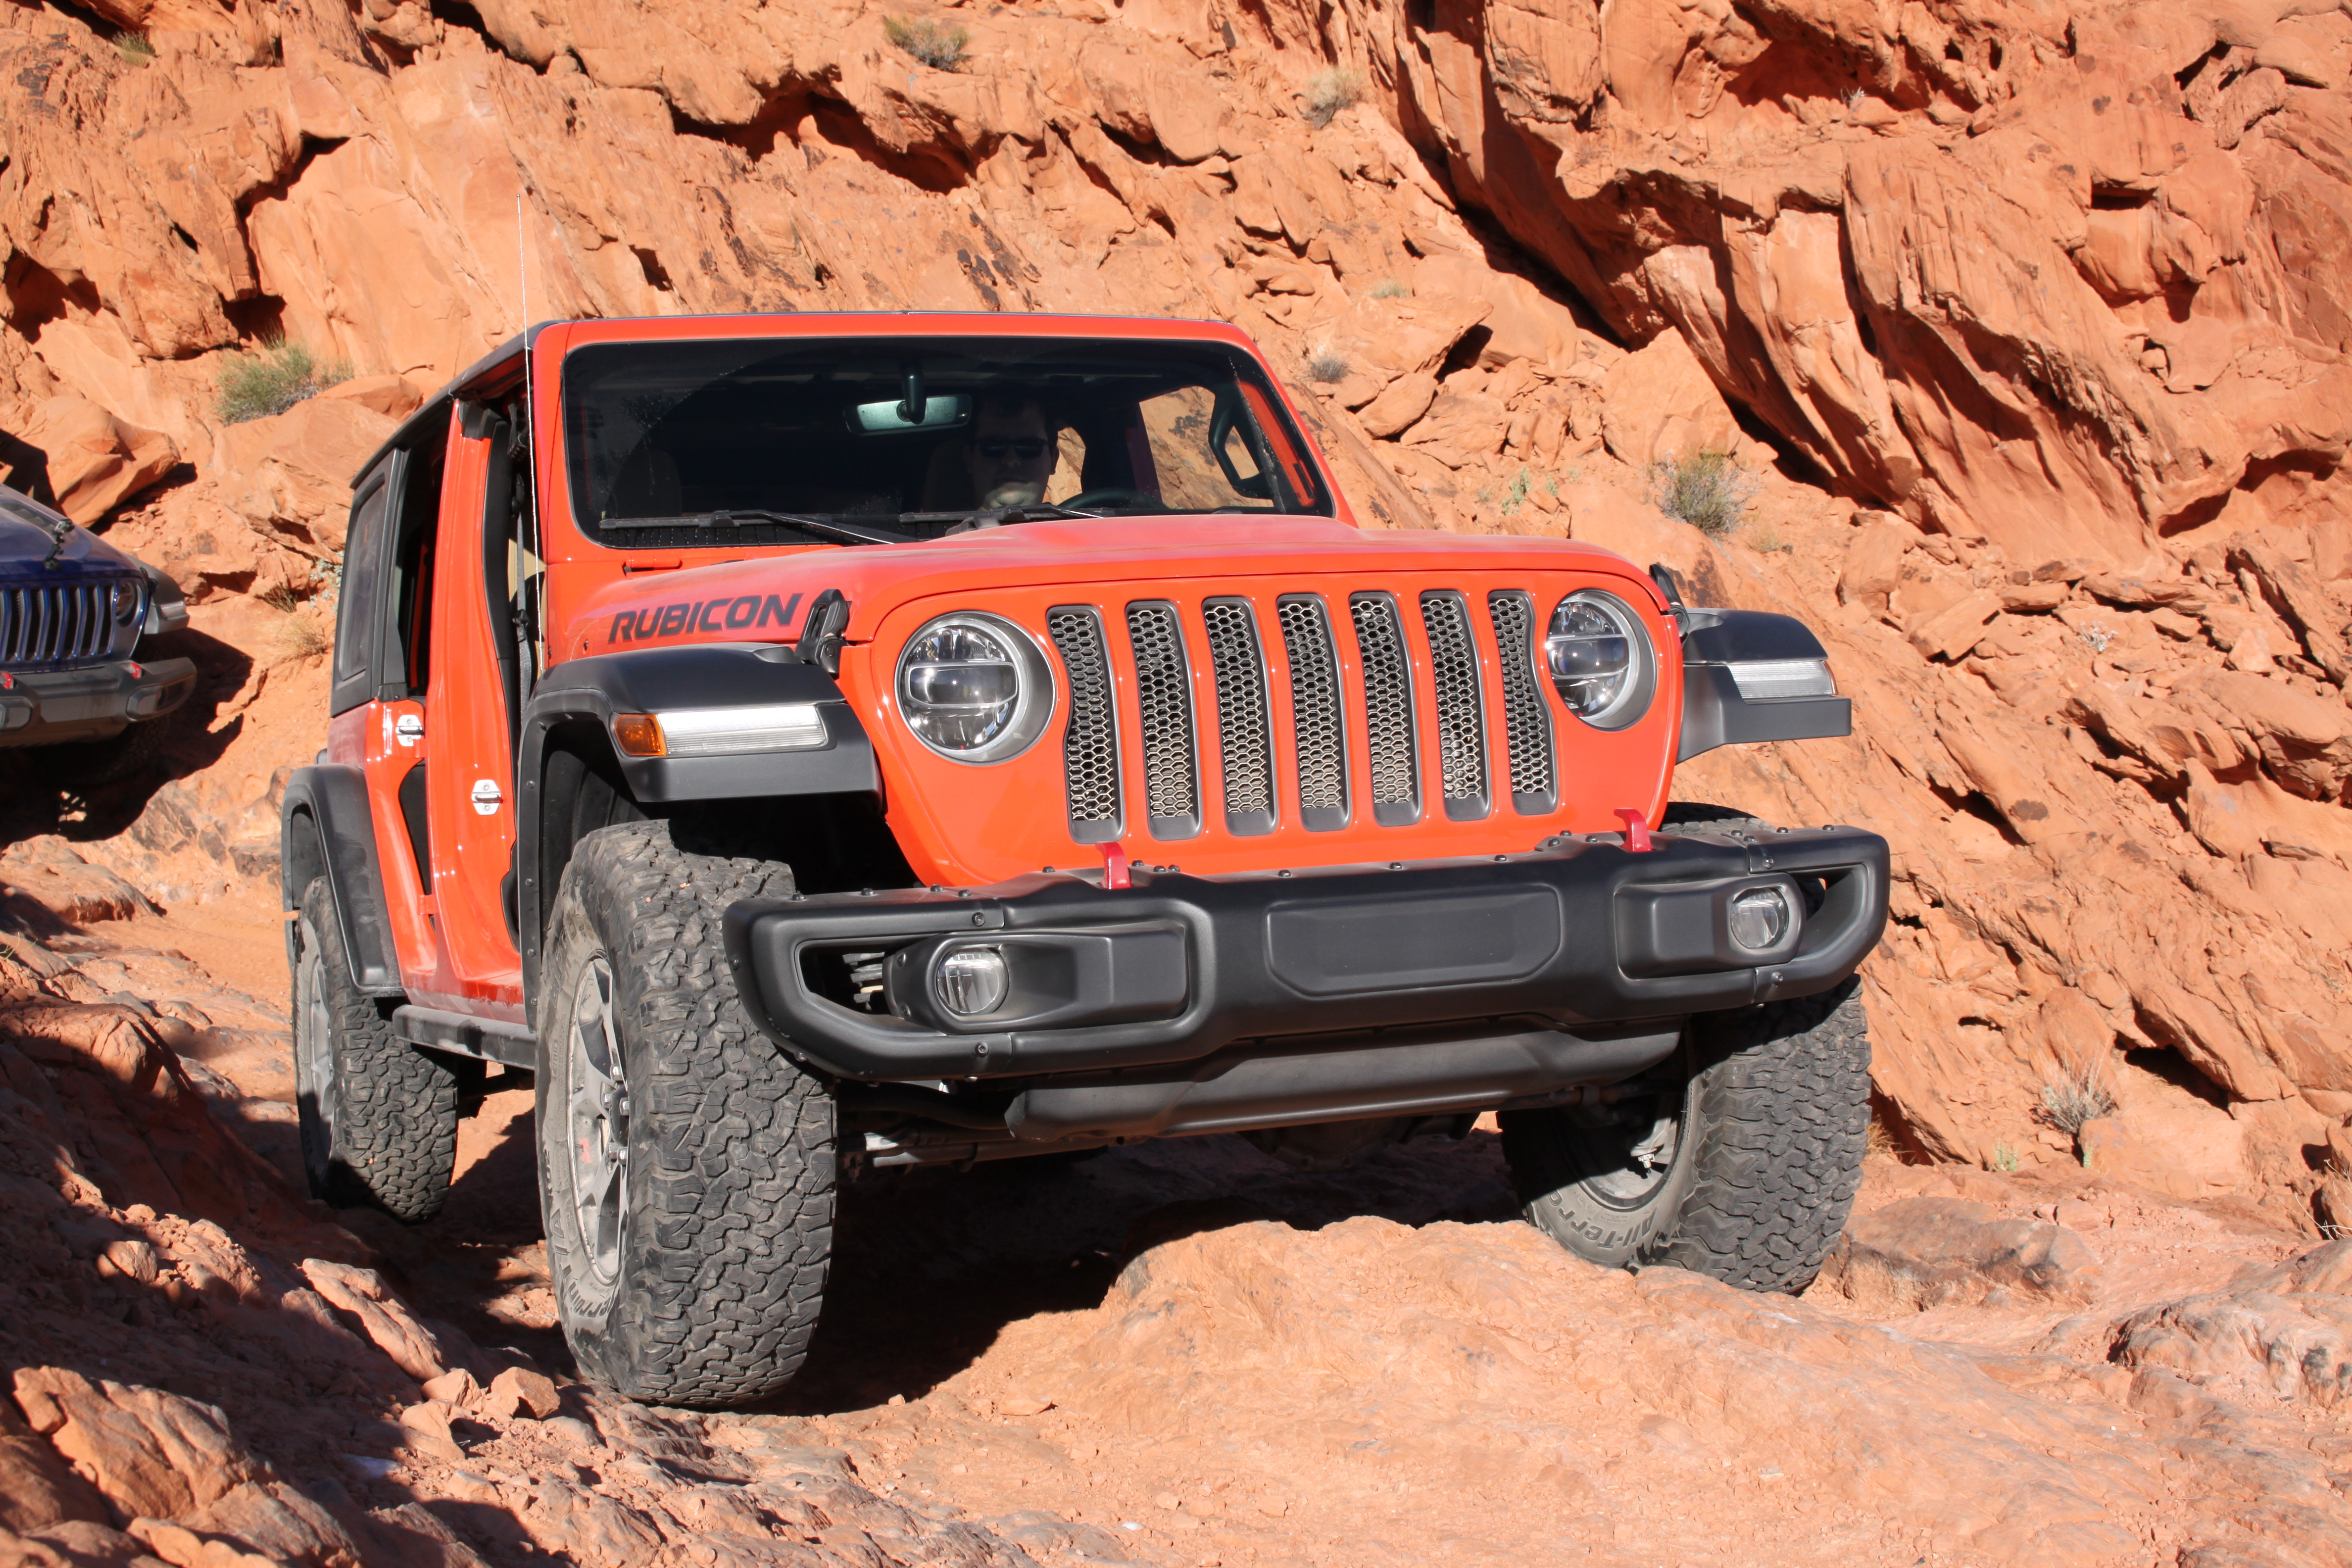 2019 Jeep Wrangler Rubicon Review - AutoGuide.com